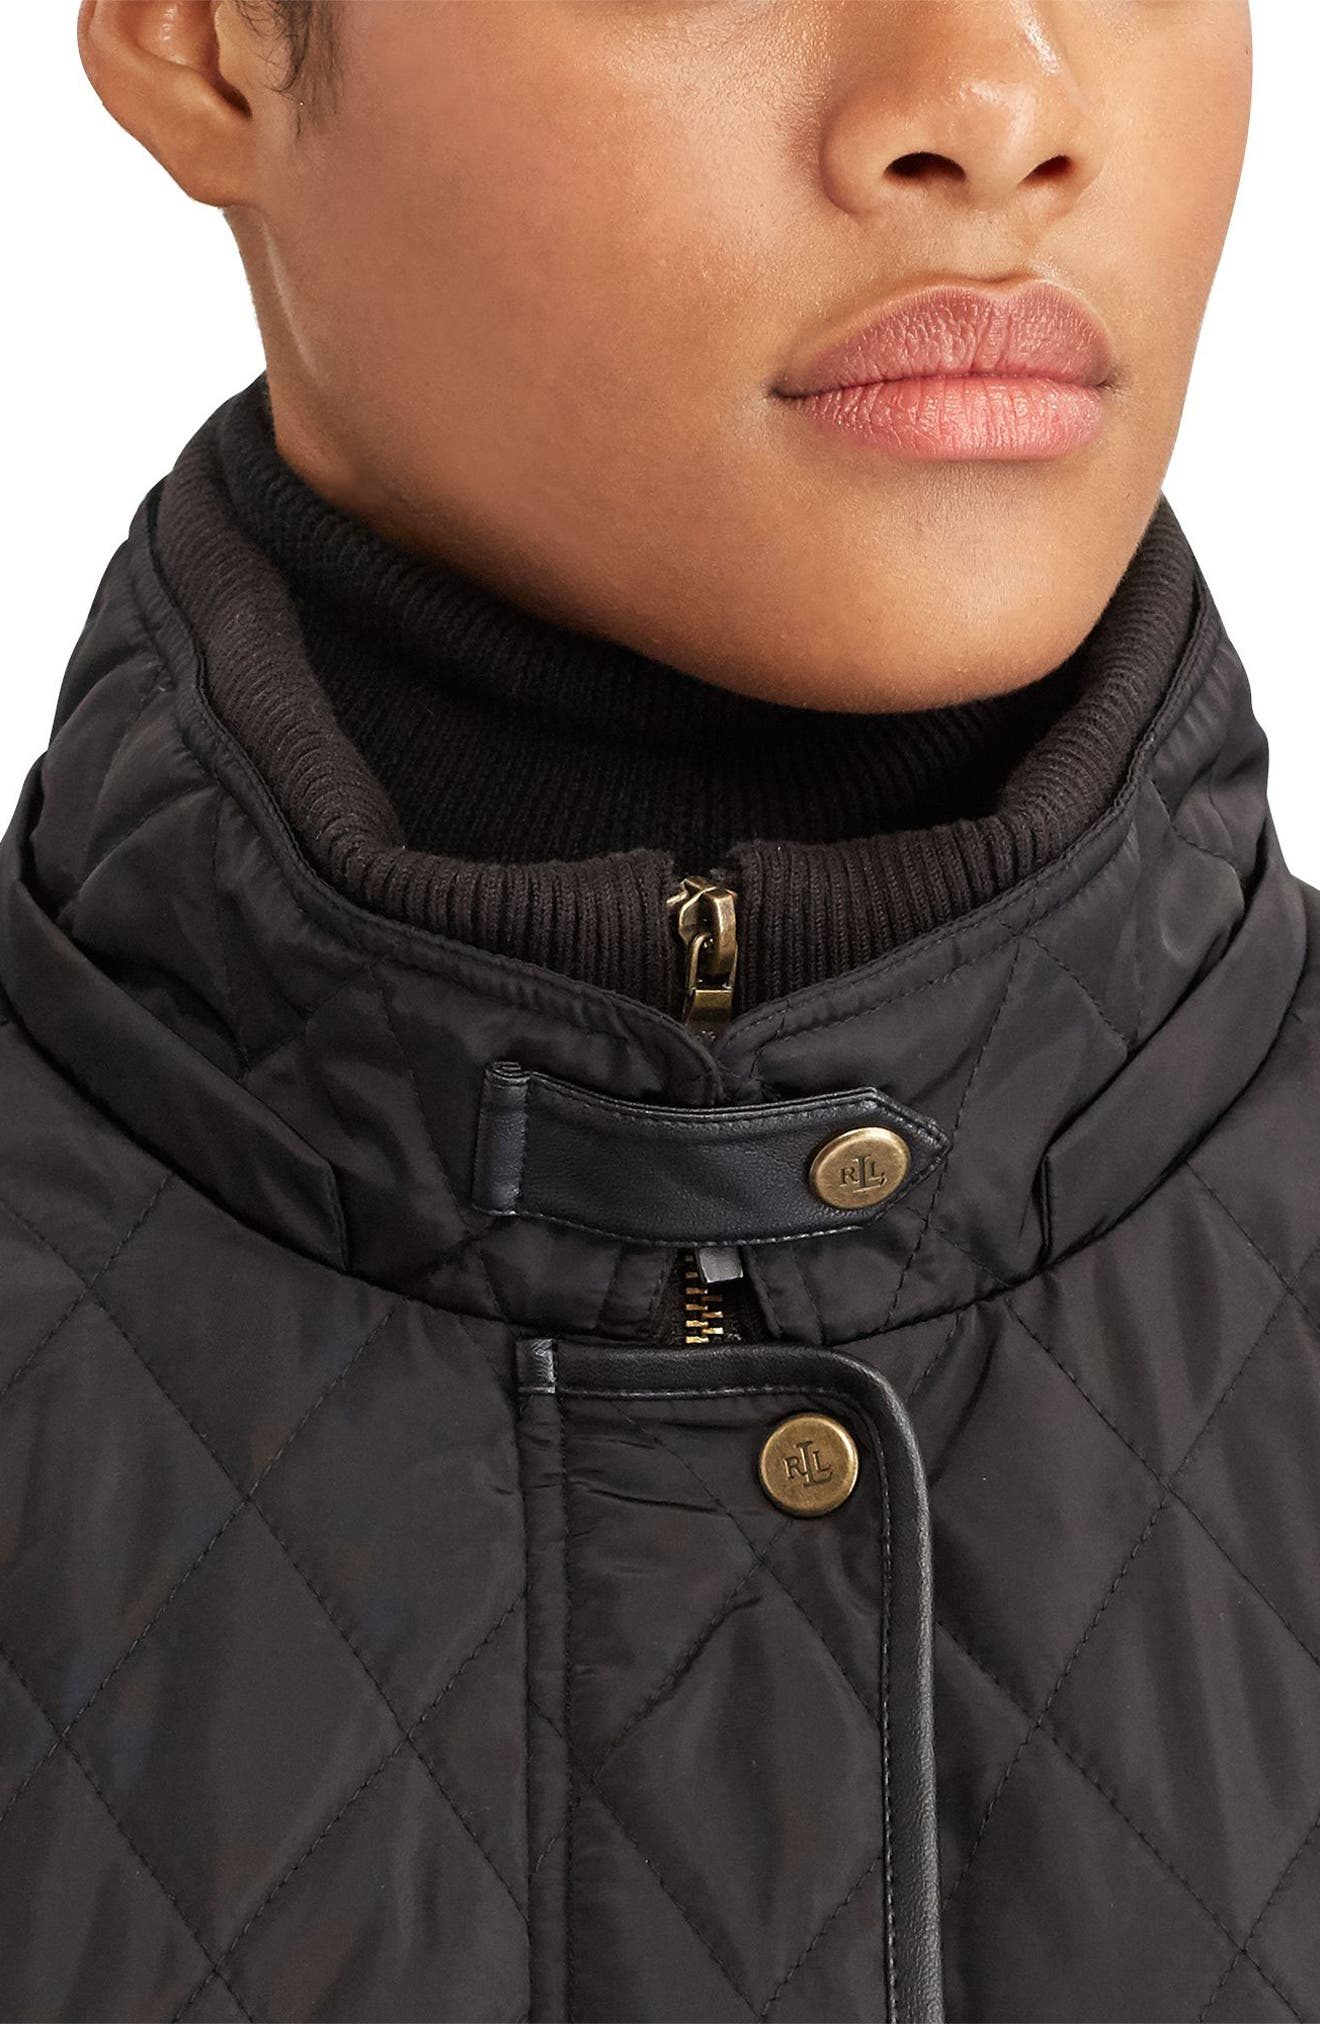 Diamond Quilted Jacket with Faux Leather Trim,                             Alternate thumbnail 3, color,                             001